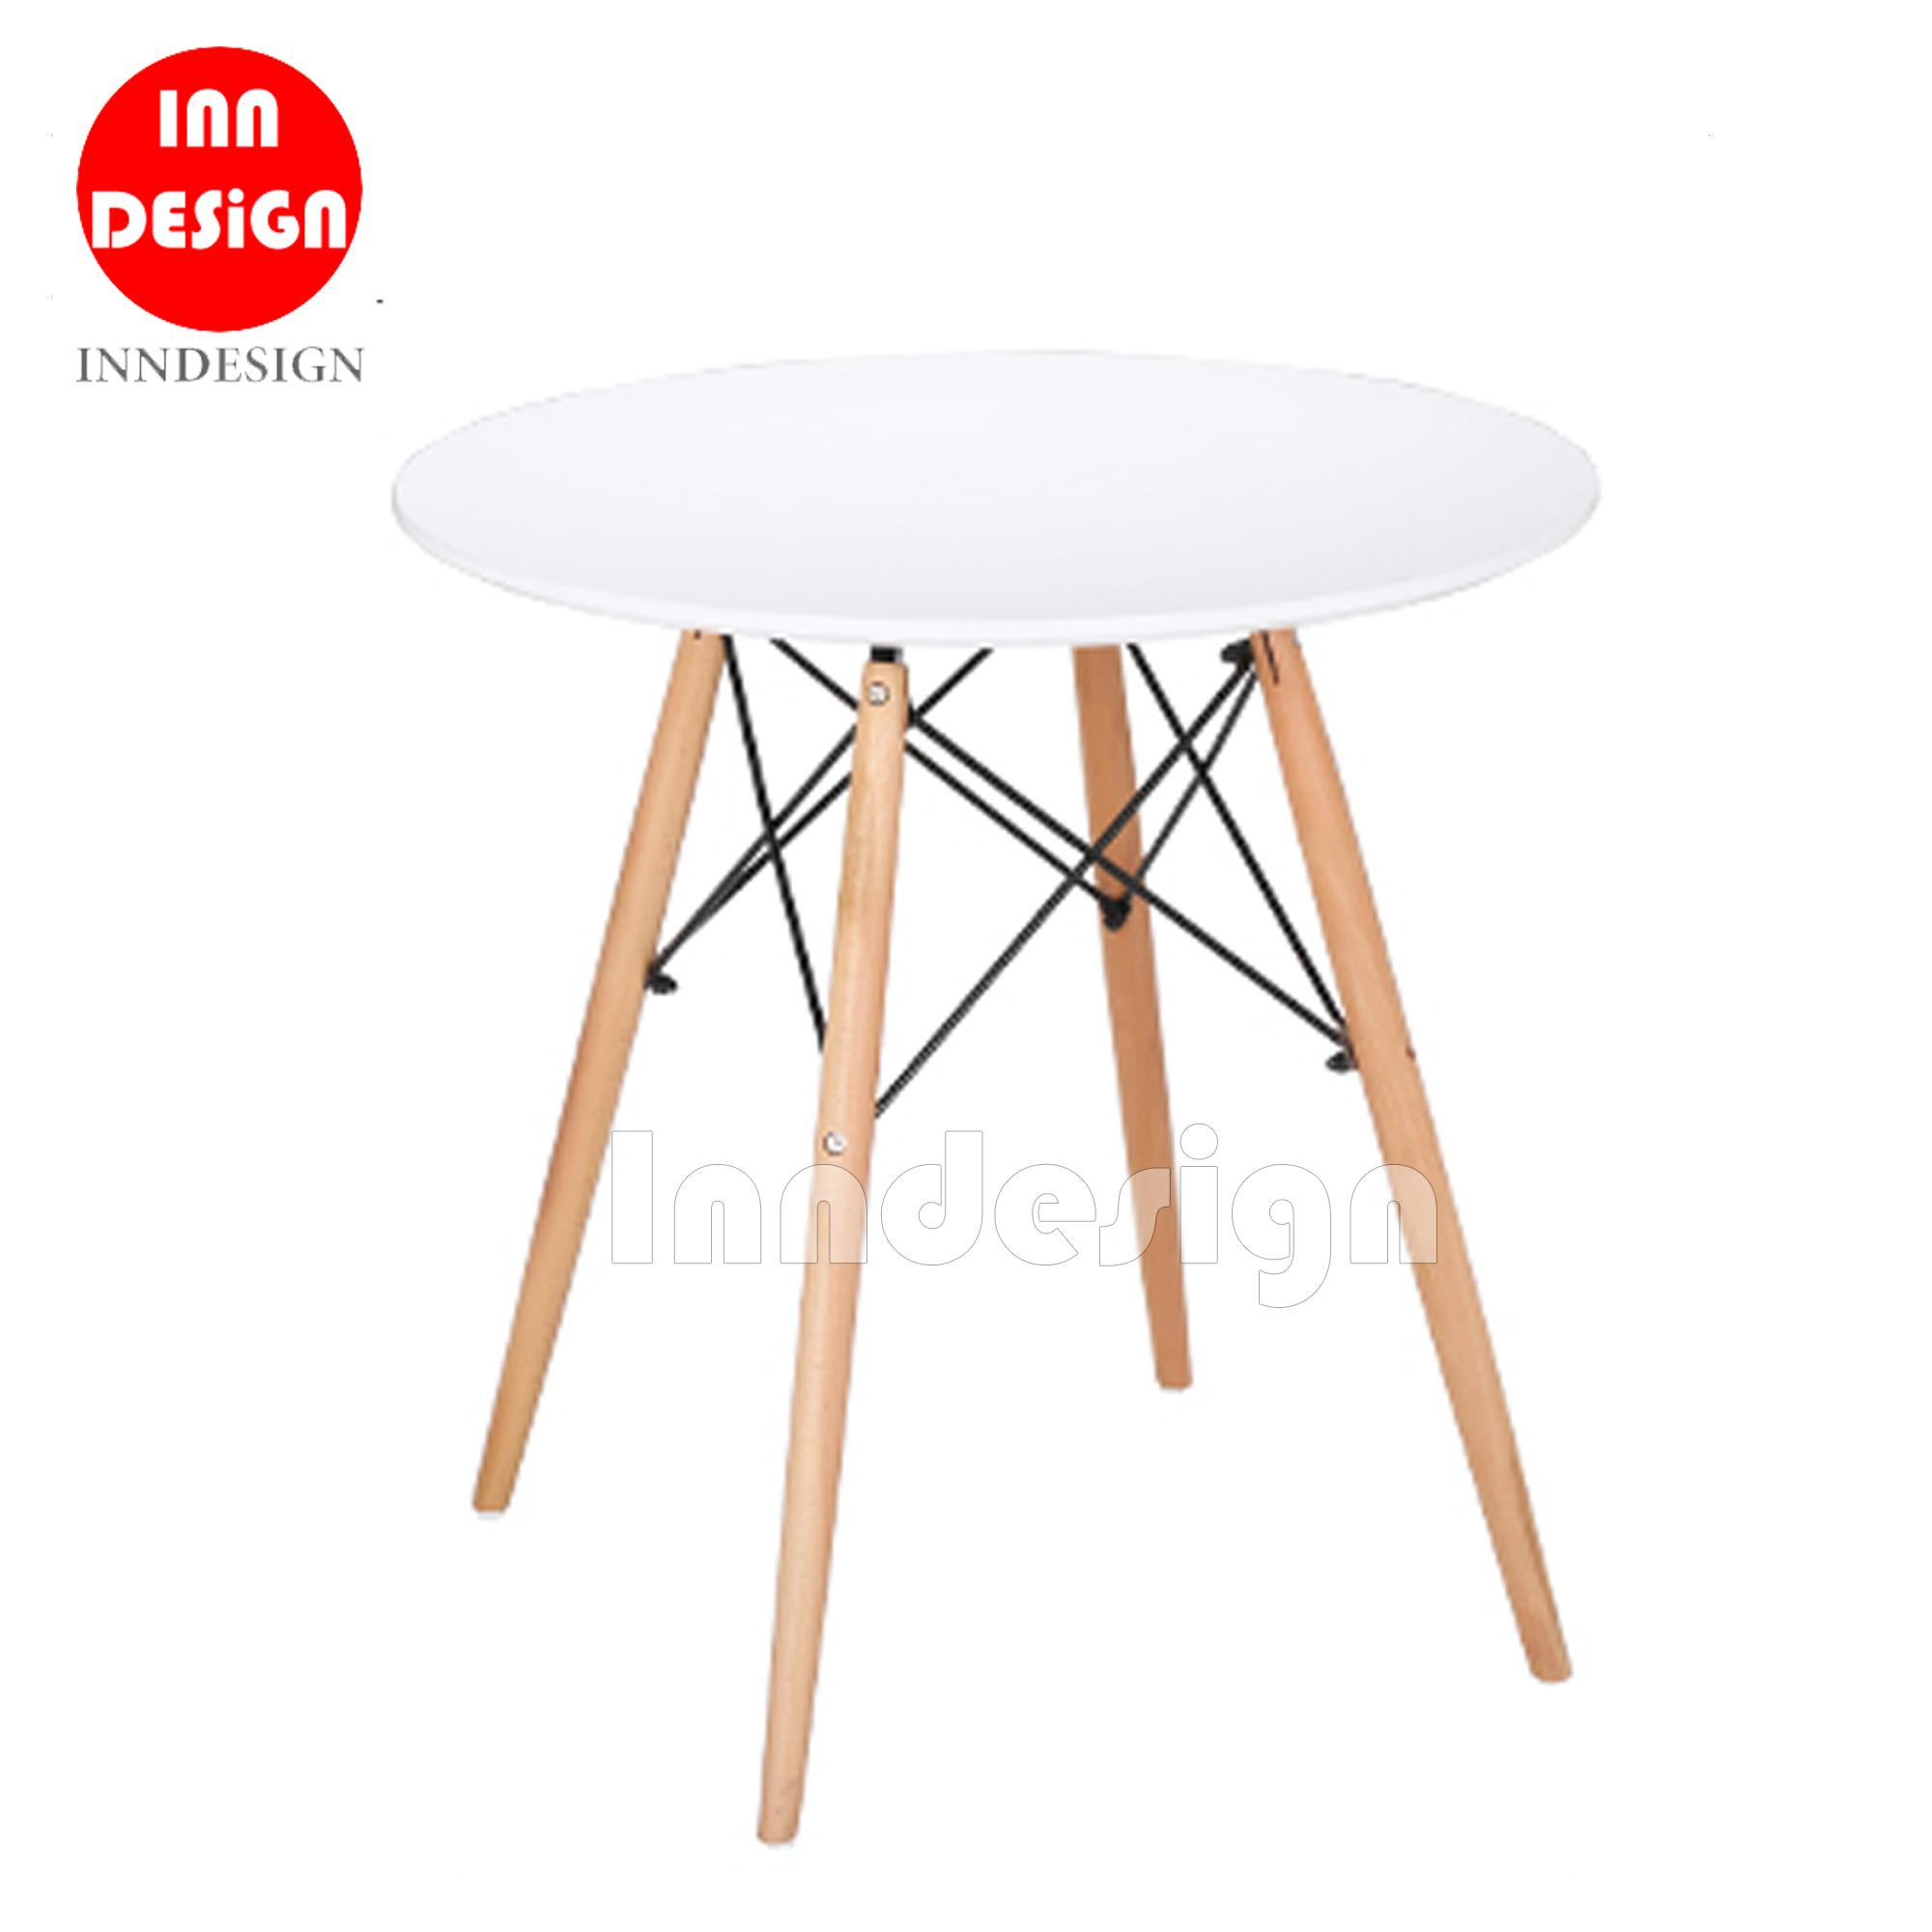 Eames Dining Table By Inndesign.